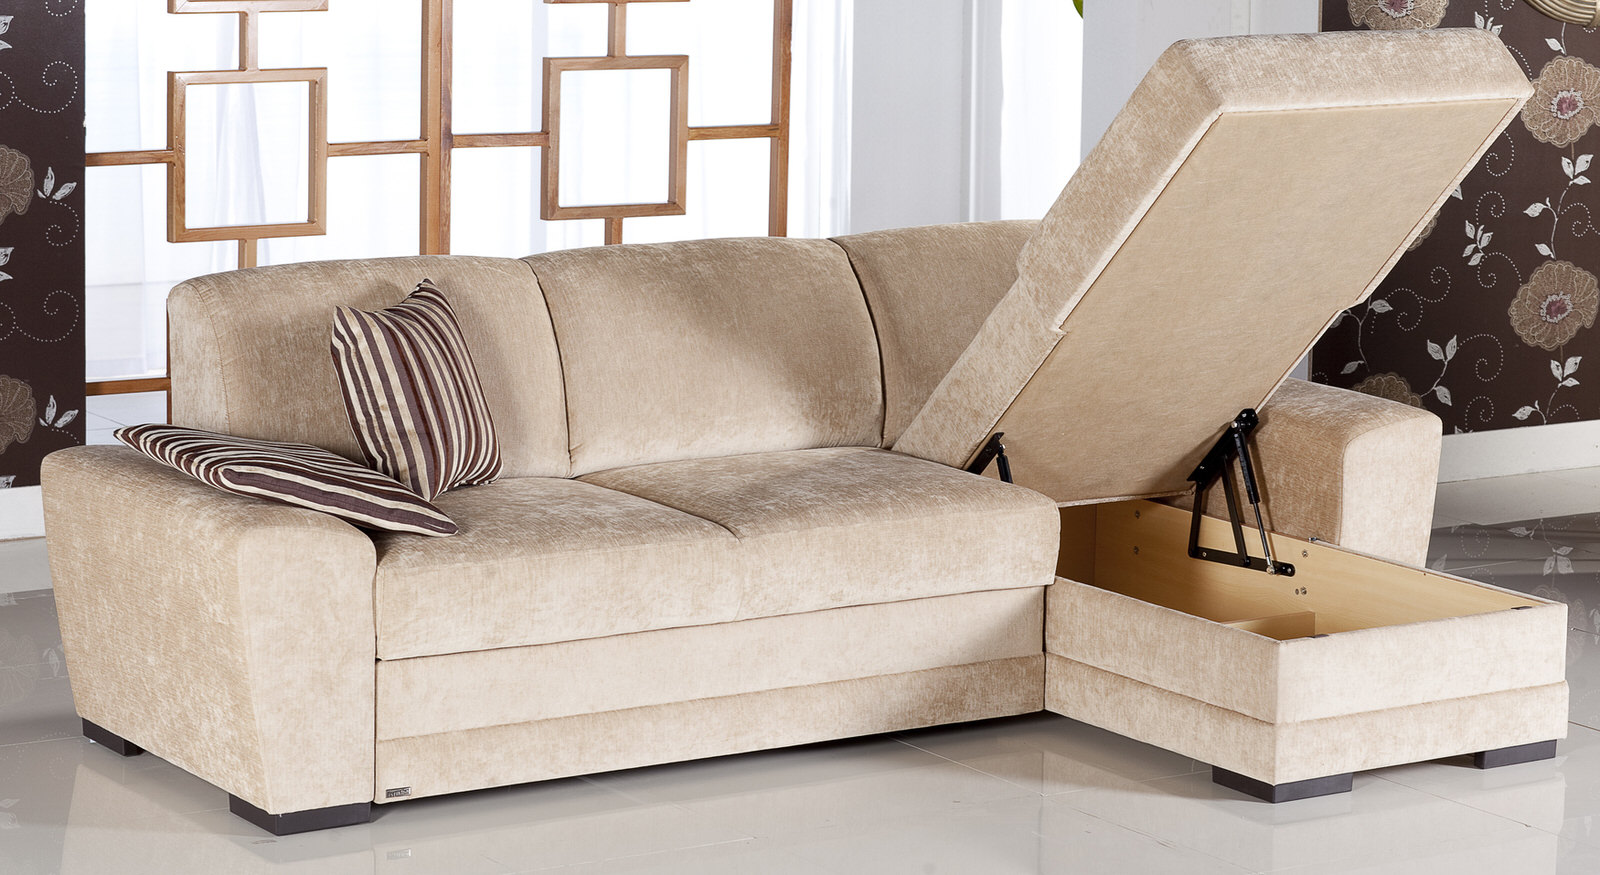 cross yuky cream sectional sofa by sunset. Black Bedroom Furniture Sets. Home Design Ideas